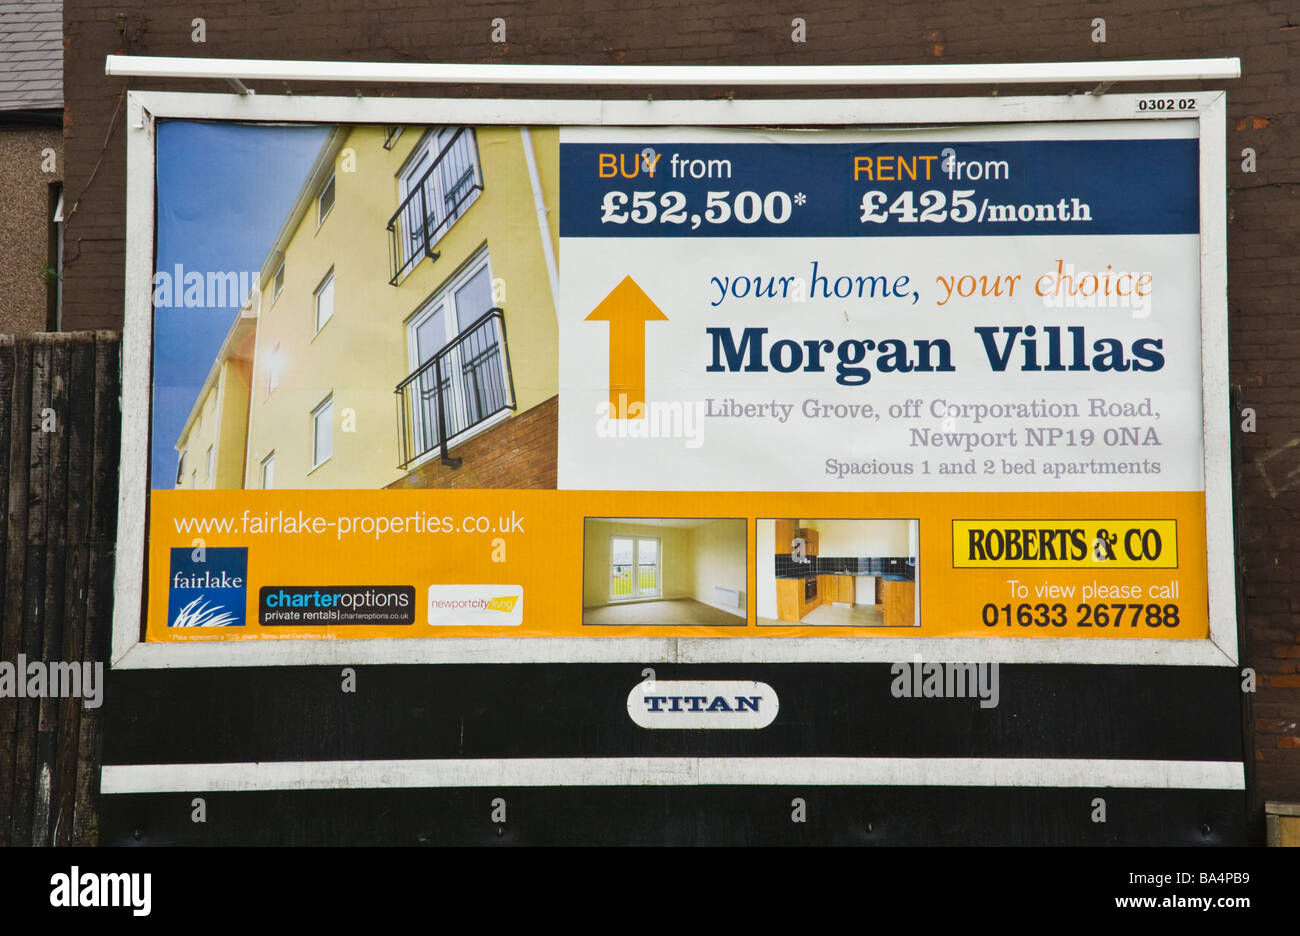 Titan billboard site advertising local house sales on hoarding in Newport South Wales UK - Stock Image